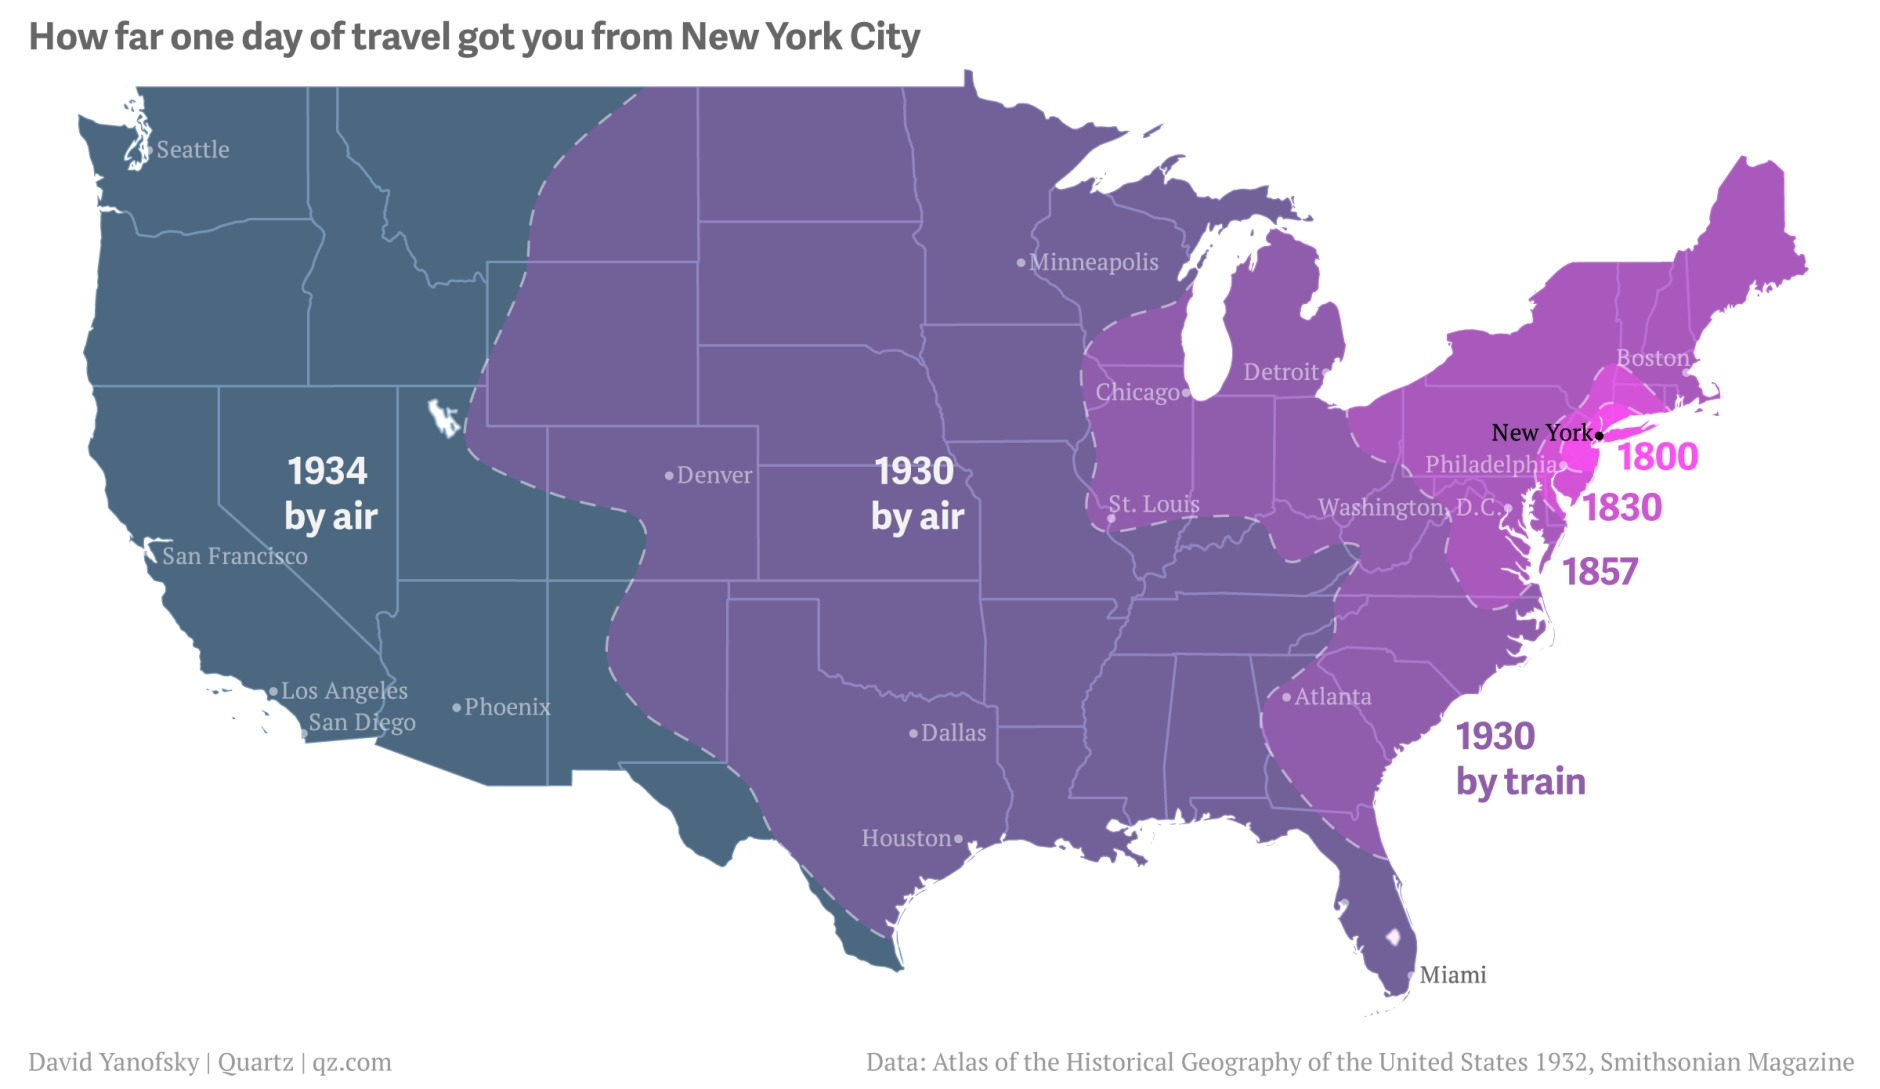 How Far From Nyc You Could Travel In One Day Between 1800 And 1934